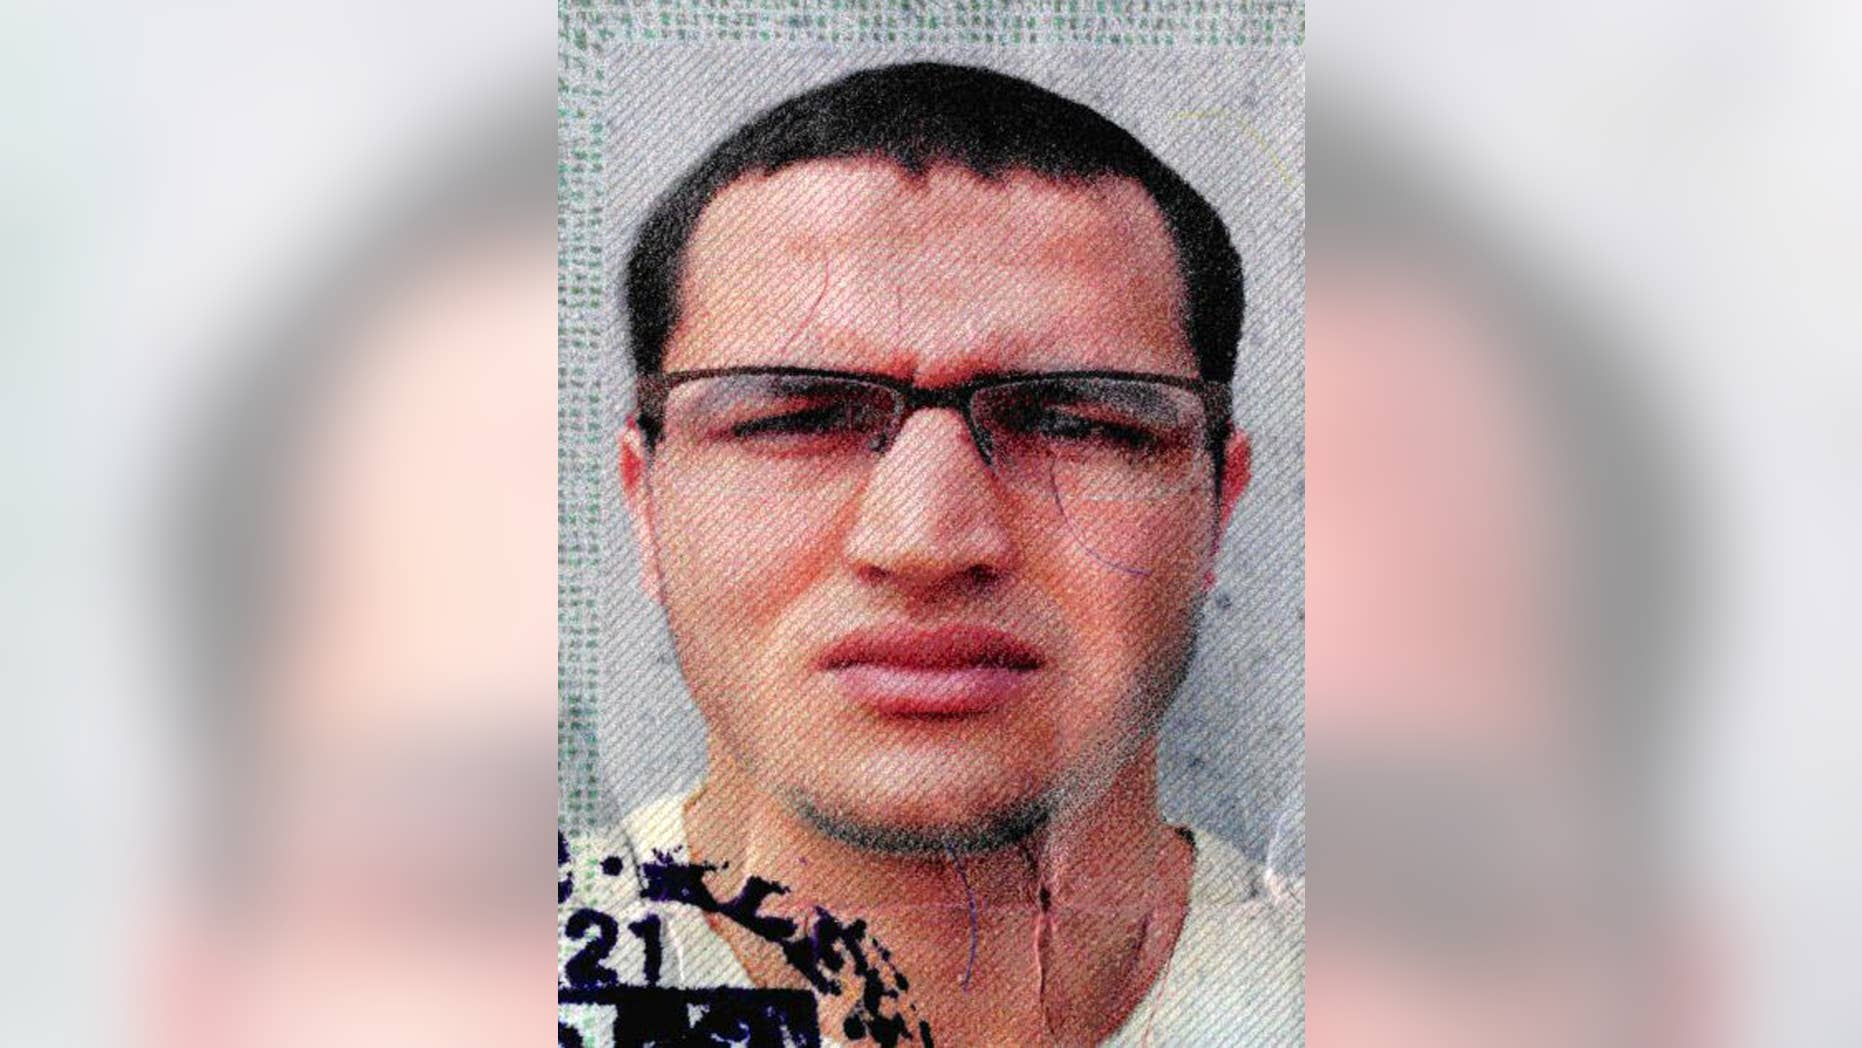 The photo issued by German federal police on Wednesday, Dec. 21, 2016 shows 24-year-old Tunisian Anis Amri on a photo that was used on the documents found in the truck. He is suspected of being involved in the fatal attack on the Christmas market in Berlin on Dec. 19, 2016. German authorities are offering a reward of up to 100,000 euros (US$ 105,000) for the arrest of the Tunisian. (German police via AP)